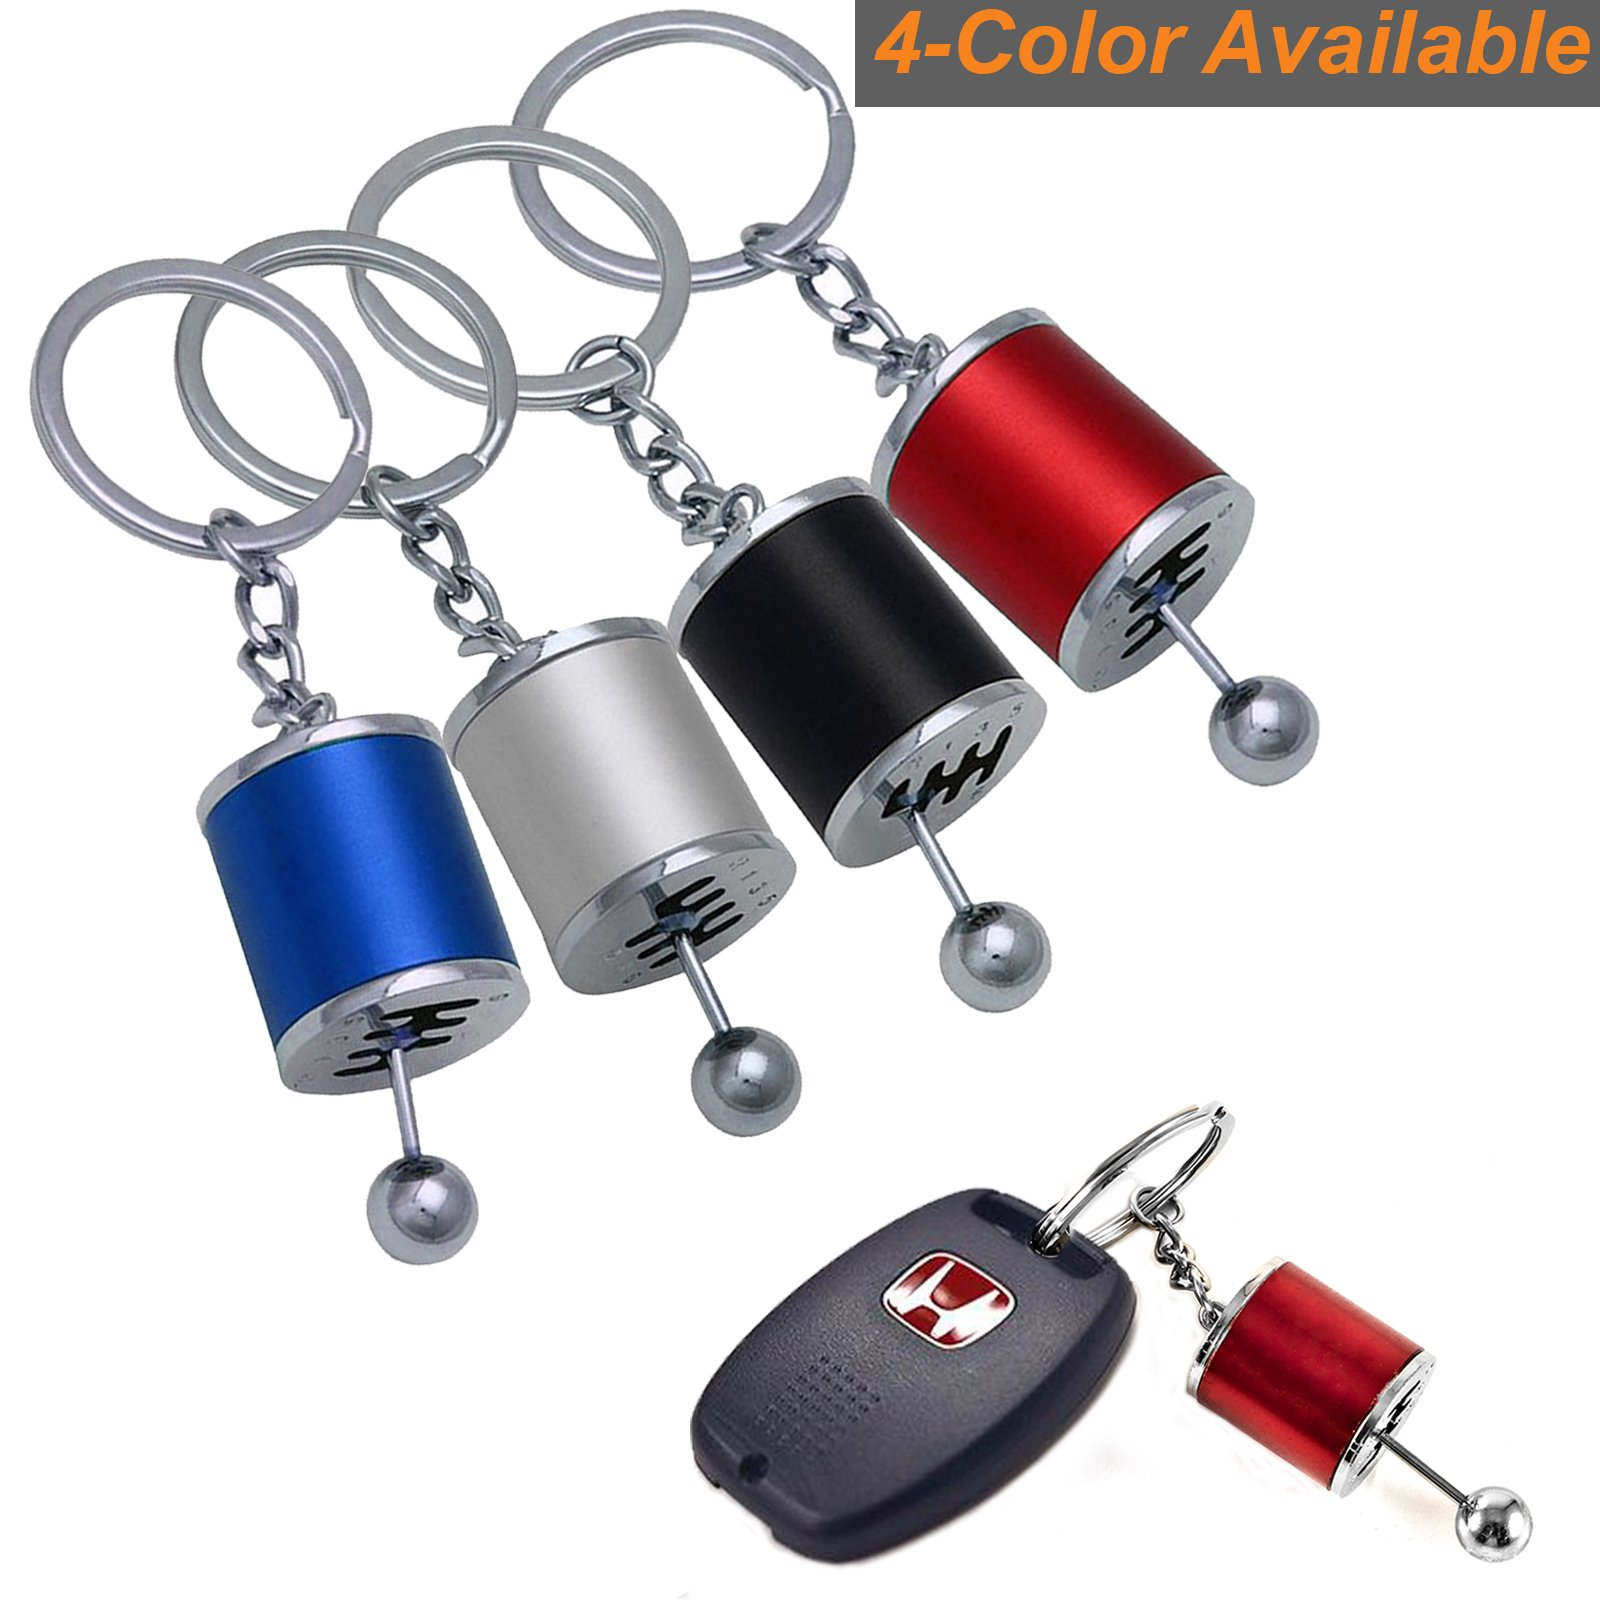 Gear Knob Gear Shift Gear Stick Gear Box Metal Key Chain Keyfob Car Keyring B*